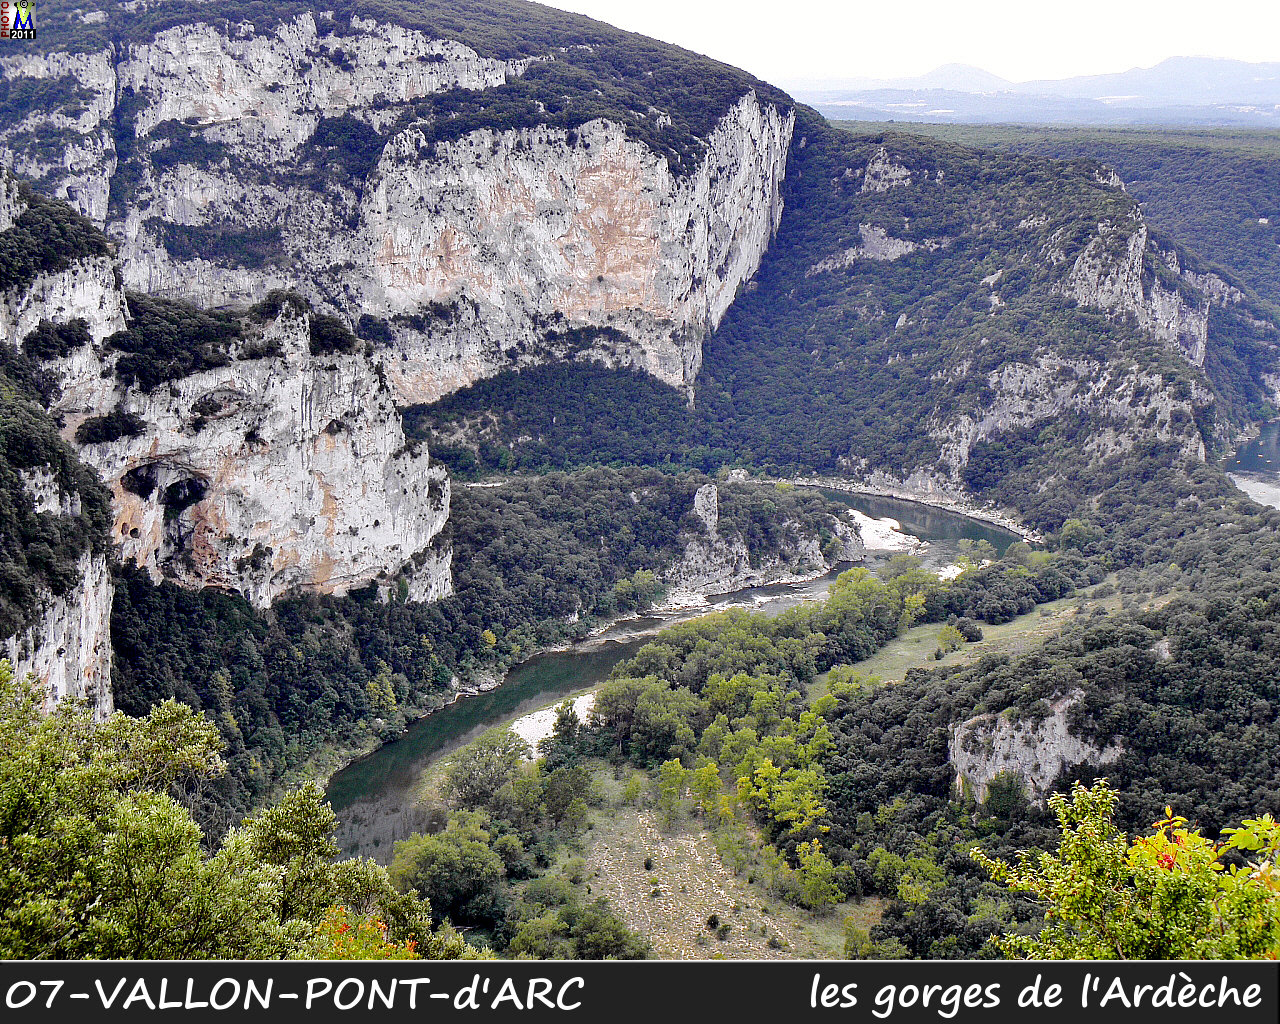 07VALLON-PONT-ARC_gorges_128.jpg